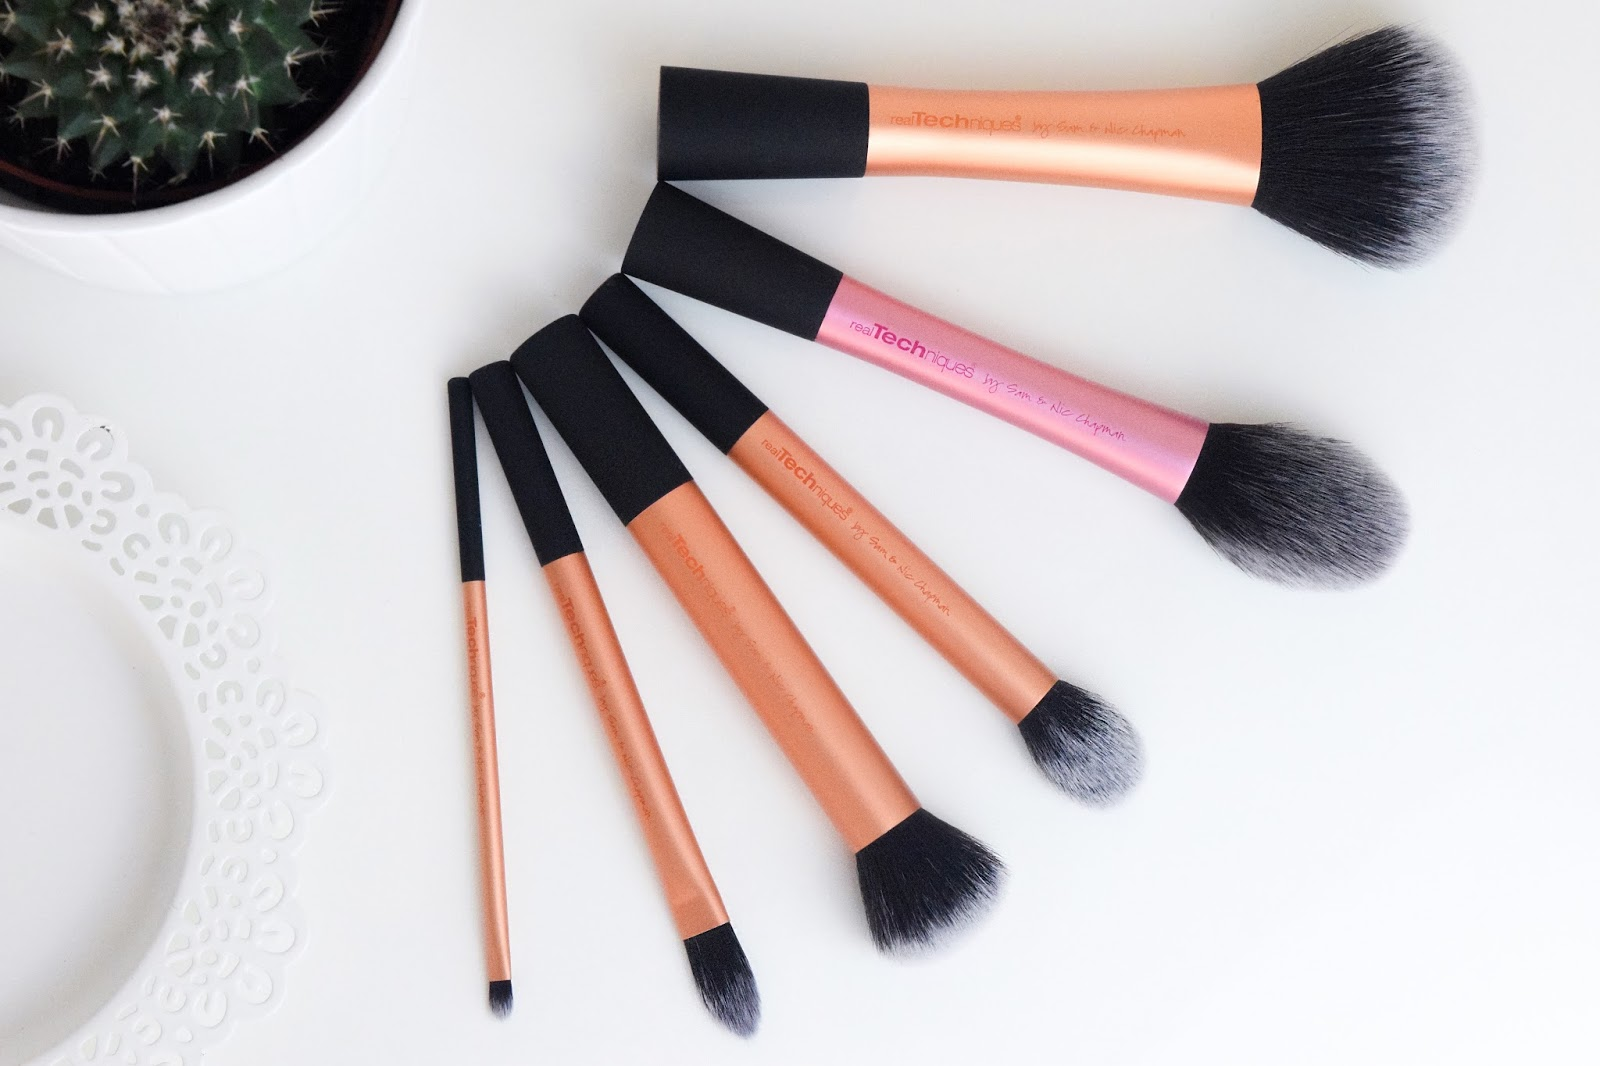 Real Techniques Make Up Brushes Aliciaamyjones 1407 Blush Brush I Am So Happy Now With My New Day To Collection And Cannot Wait Purchase More Of The Add It